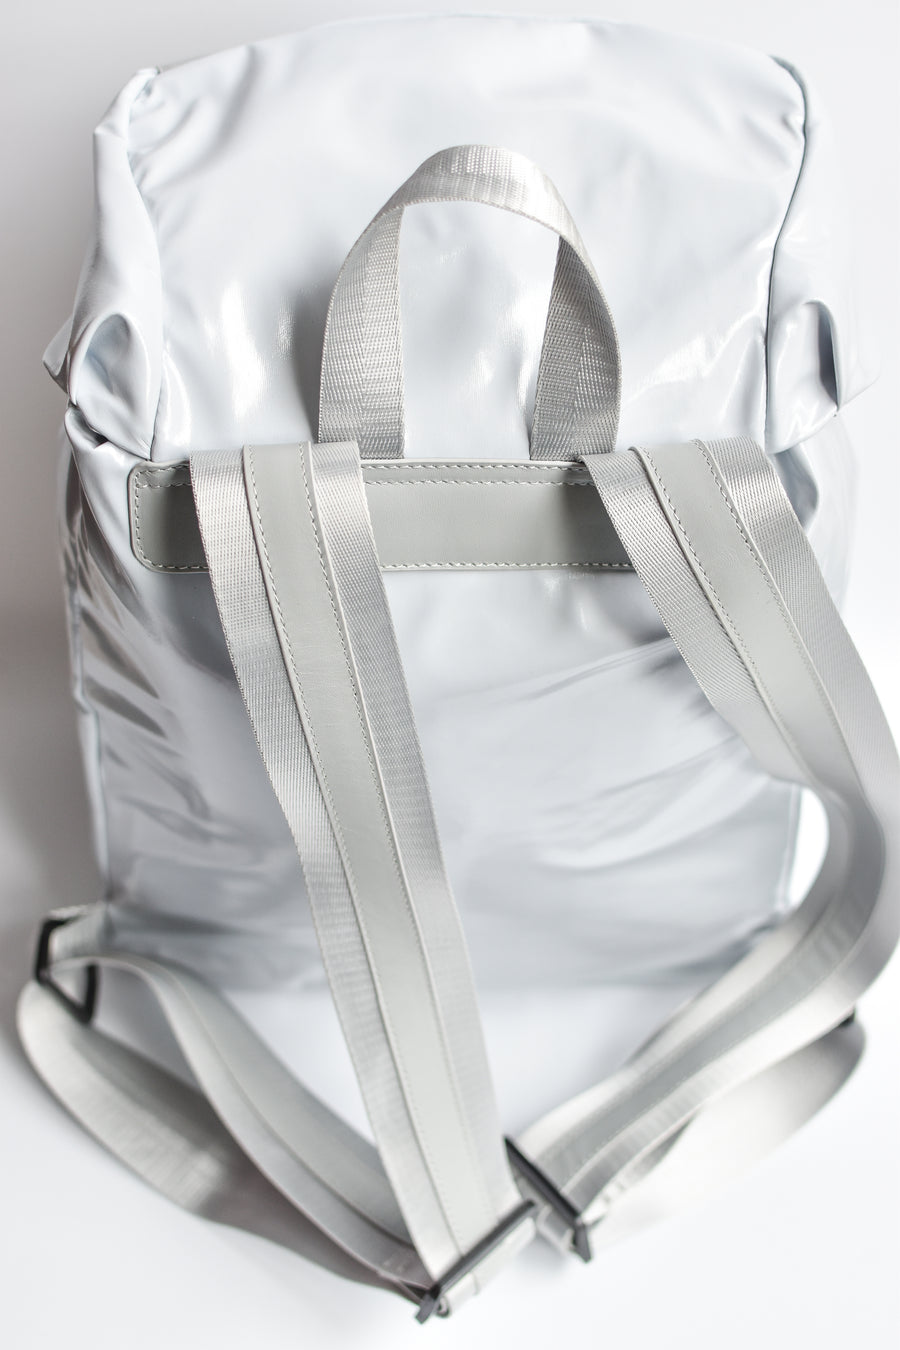 Back view of gray high gloss backpack with gray leather and webbing details.